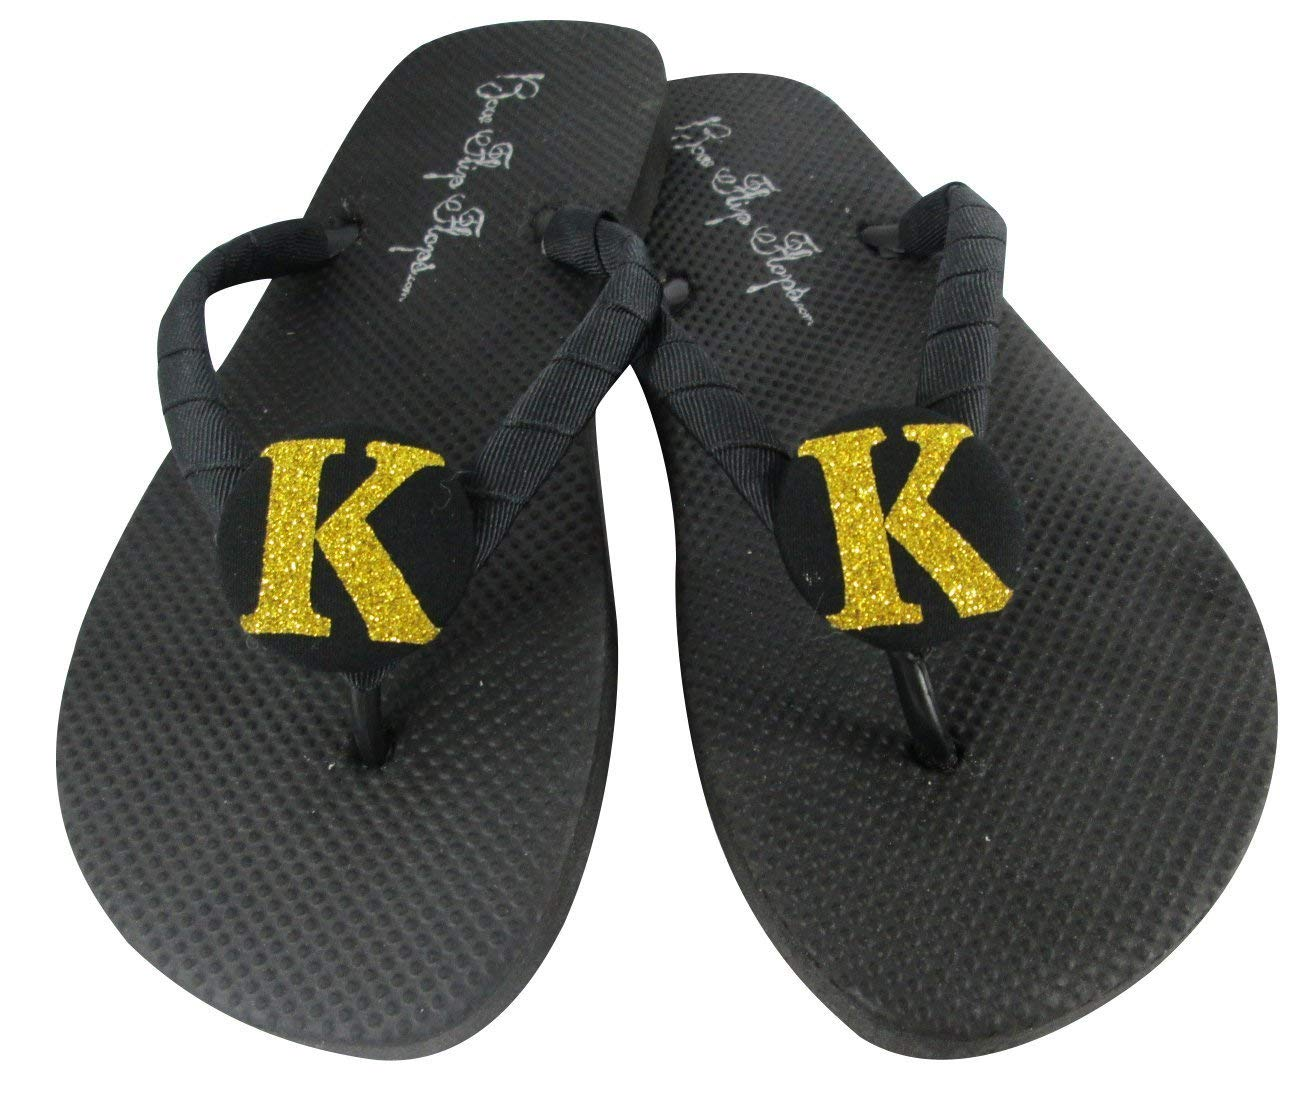 6483ee4c8 Get Quotations · Gold Glitter on Black Flip Flops